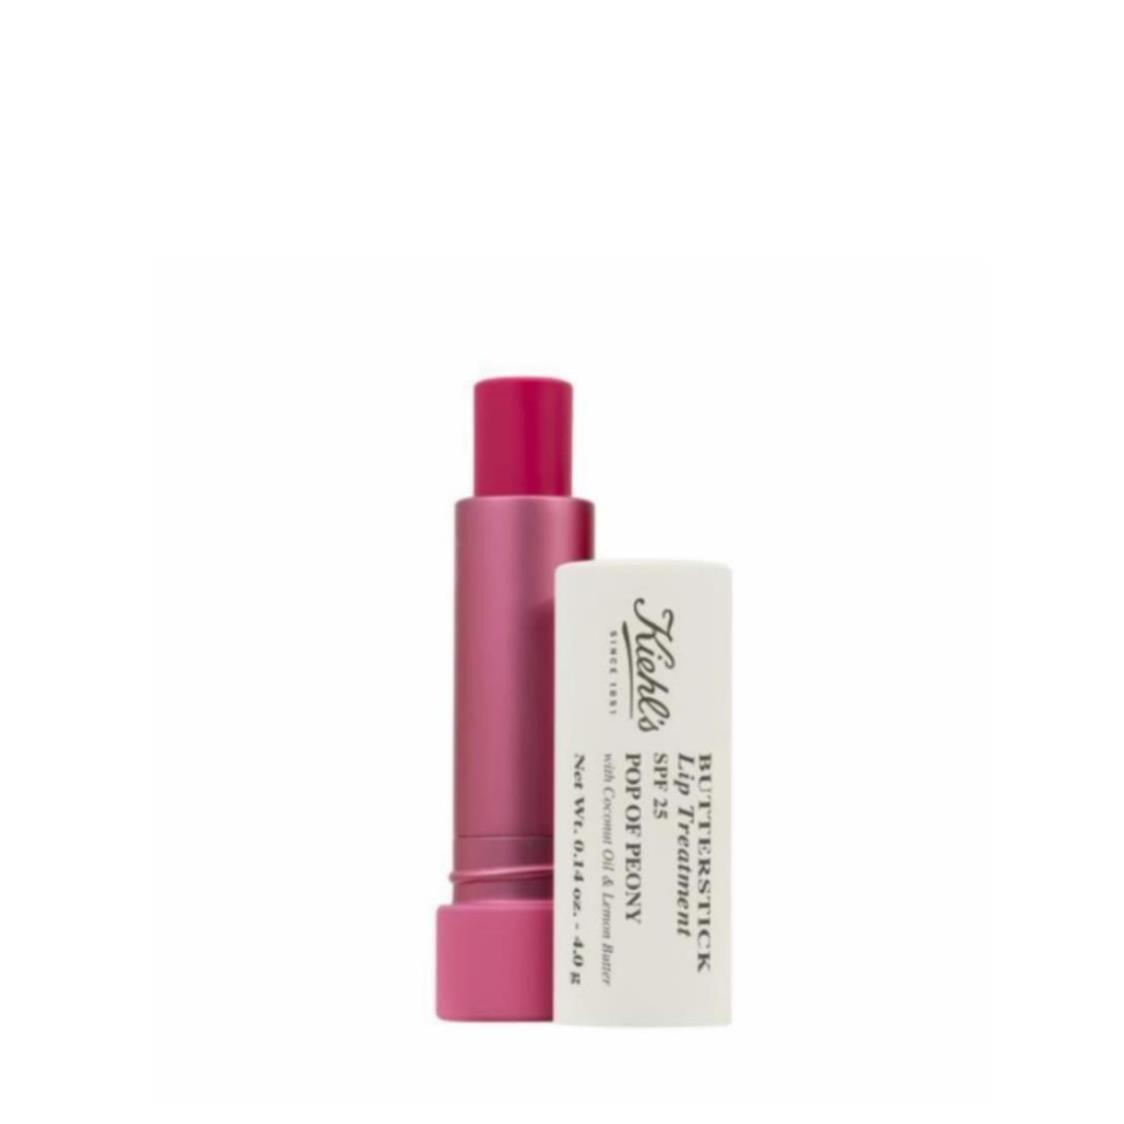 Butterstick Lip Treatment SPF25 in Peony